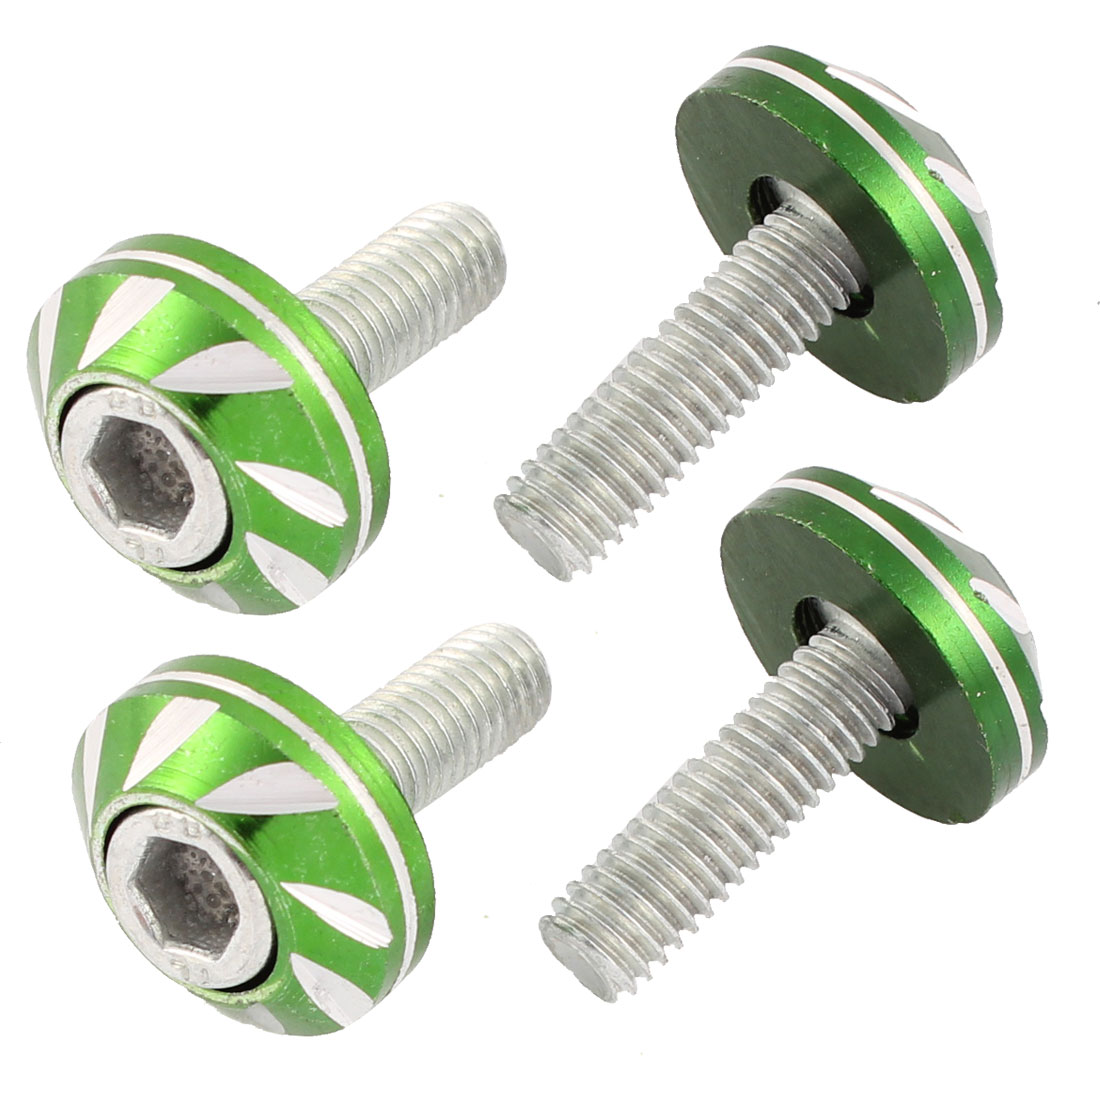 4 Pcs Car Green Round Shape Leaf Pattern 6mm Dia License Plate Screw Bolt